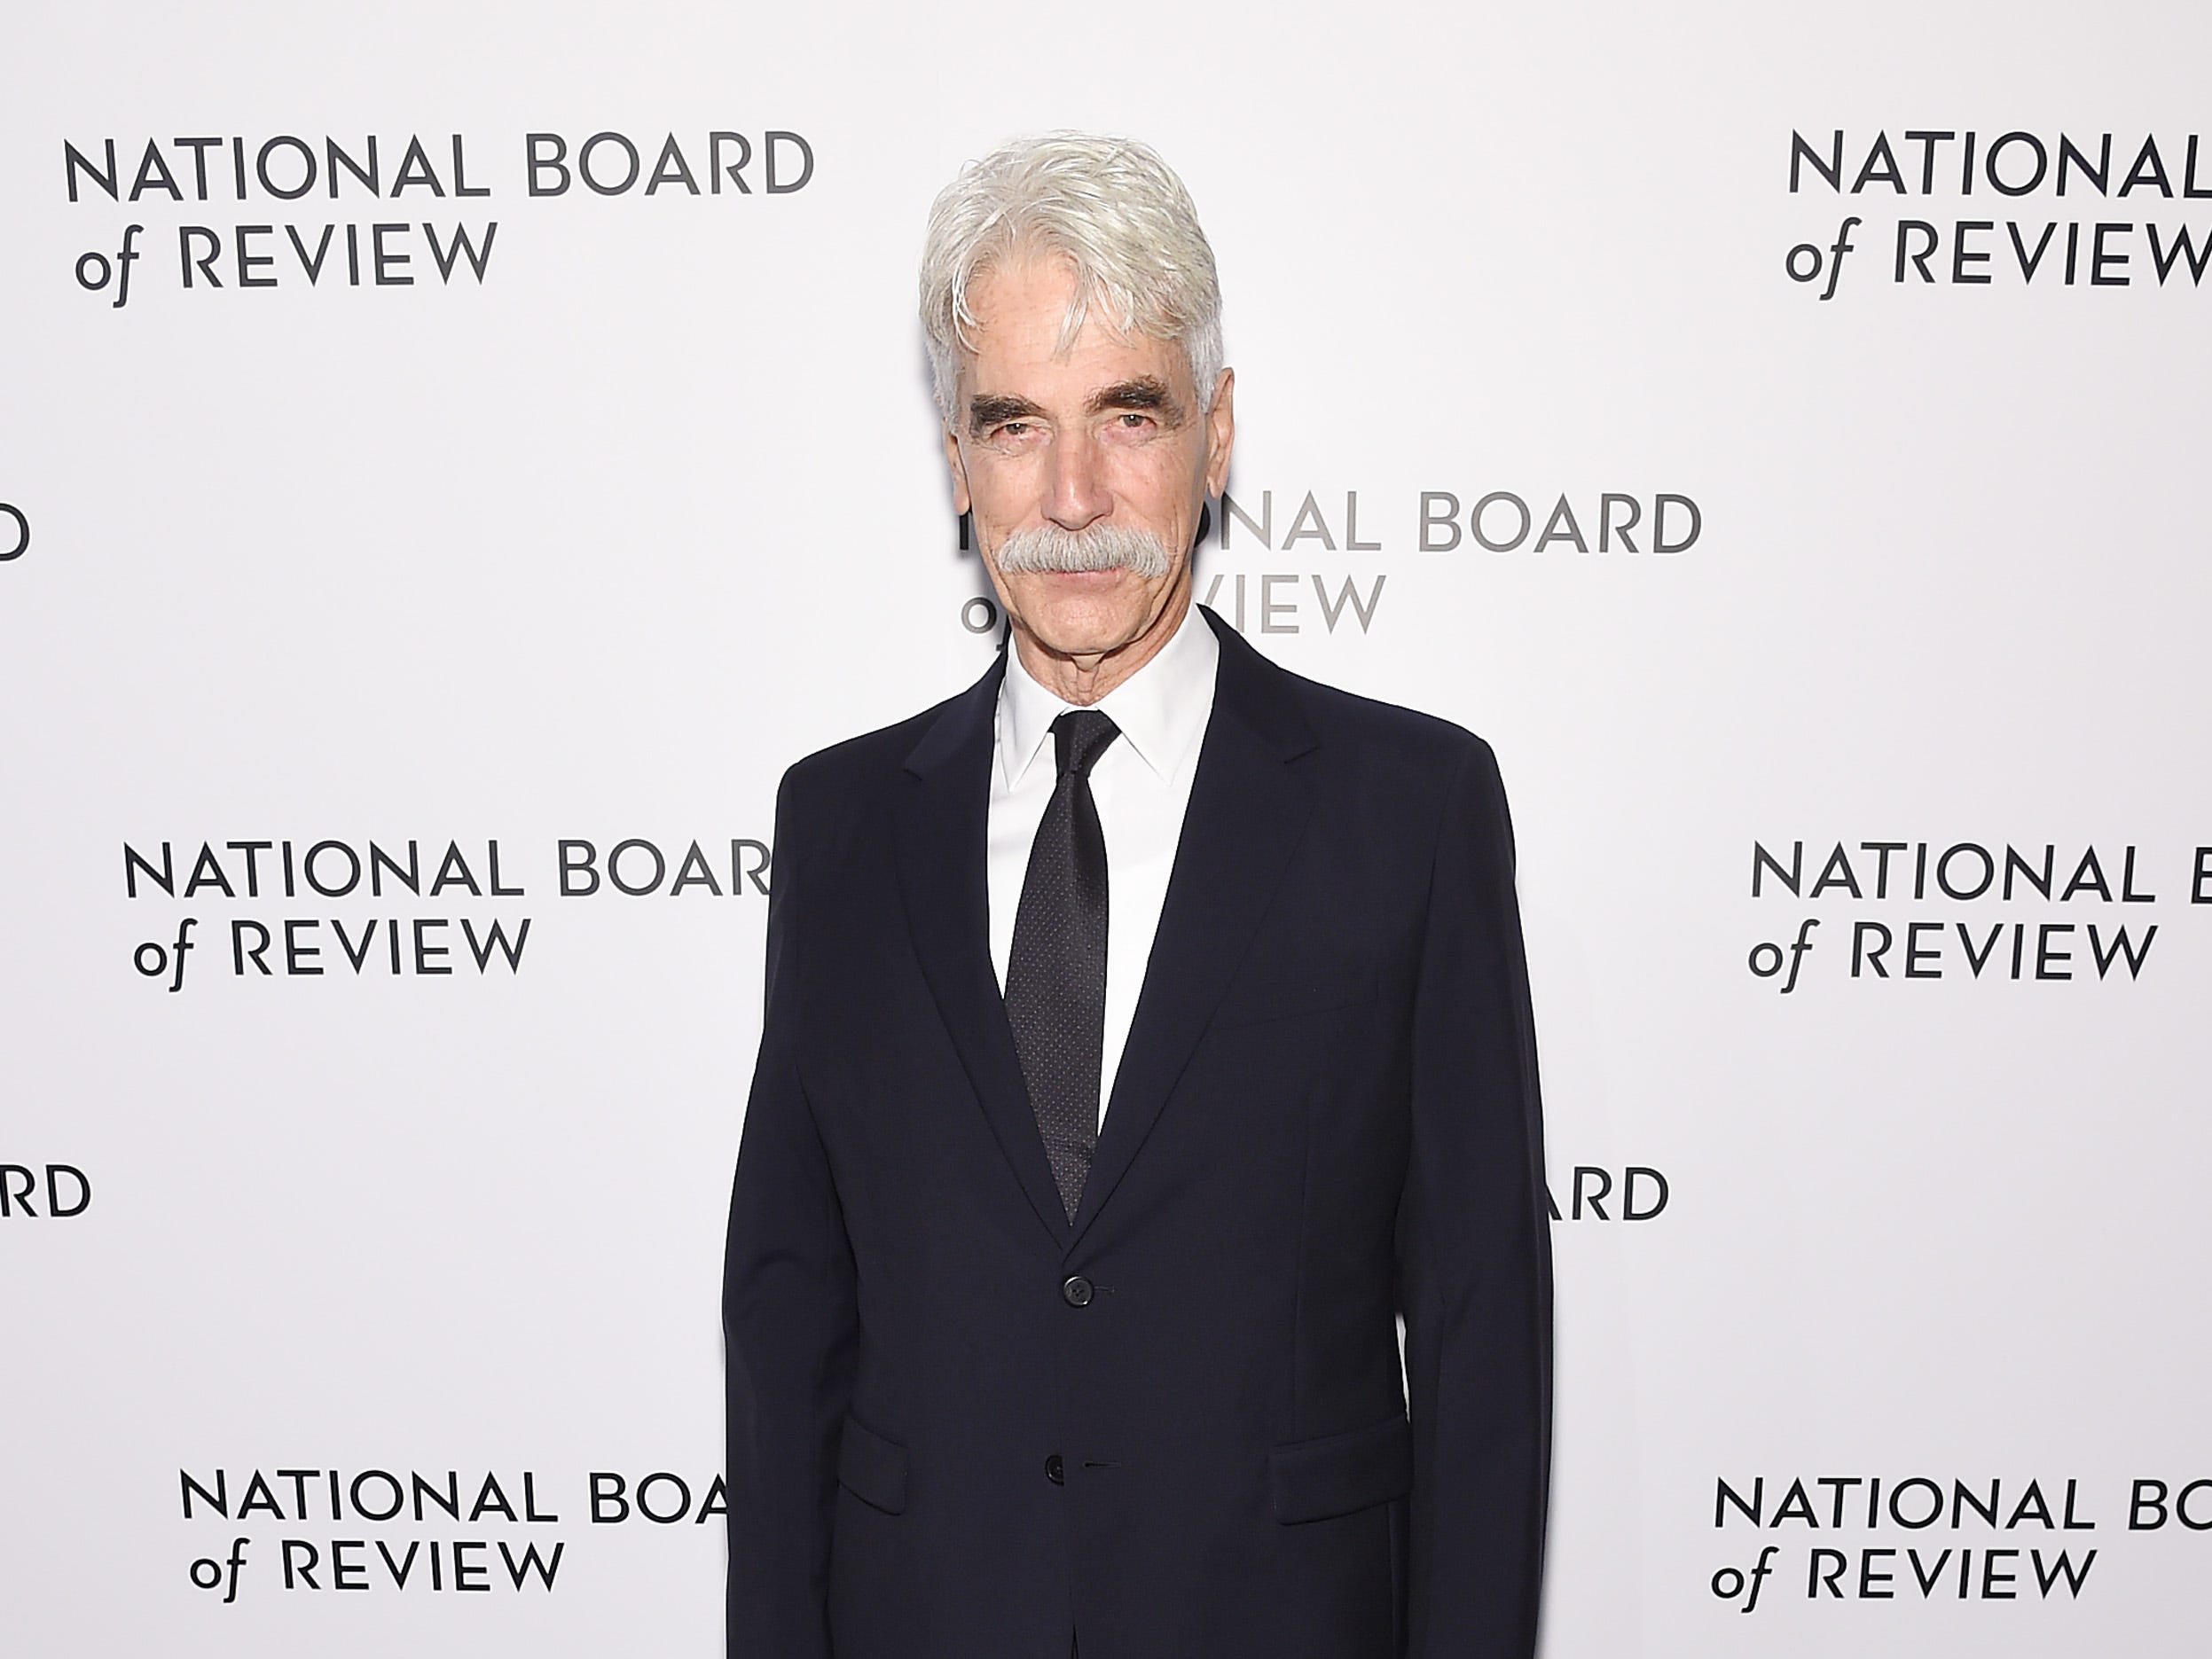 NEW YORK, NY - JANUARY 08: Sam Elliott attends The National Board of Review Annual Awards Gala at Cipriani 42nd Street on January 8, 2019 in New York City.  (Photo by Jamie McCarthy/Getty Images for National Board of Review) ORG XMIT: 775259363 ORIG FILE ID: 1079453264